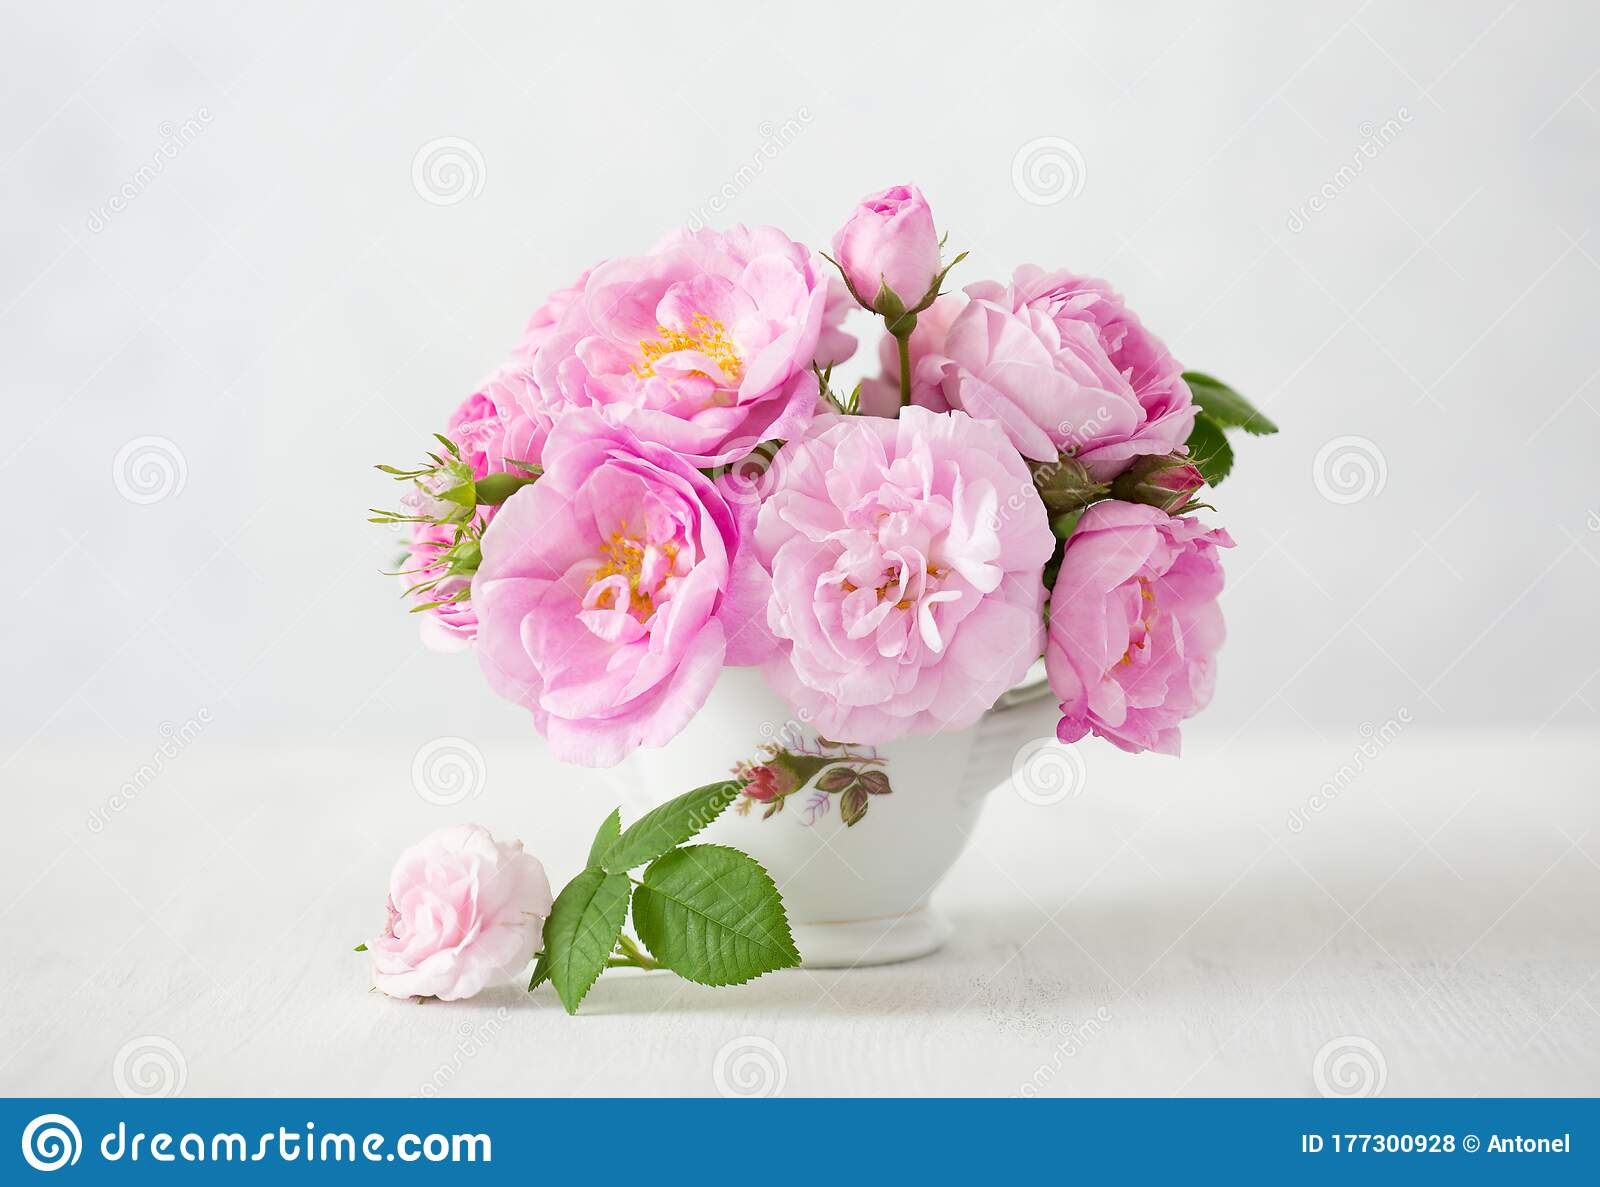 Small Light Pink Bouquet Of Roses In Porcelain Vase Against Of Pale Grey Background Shallow Depth Of Field Selective Focus Stock Photo Image Of Focus Gray 177300928